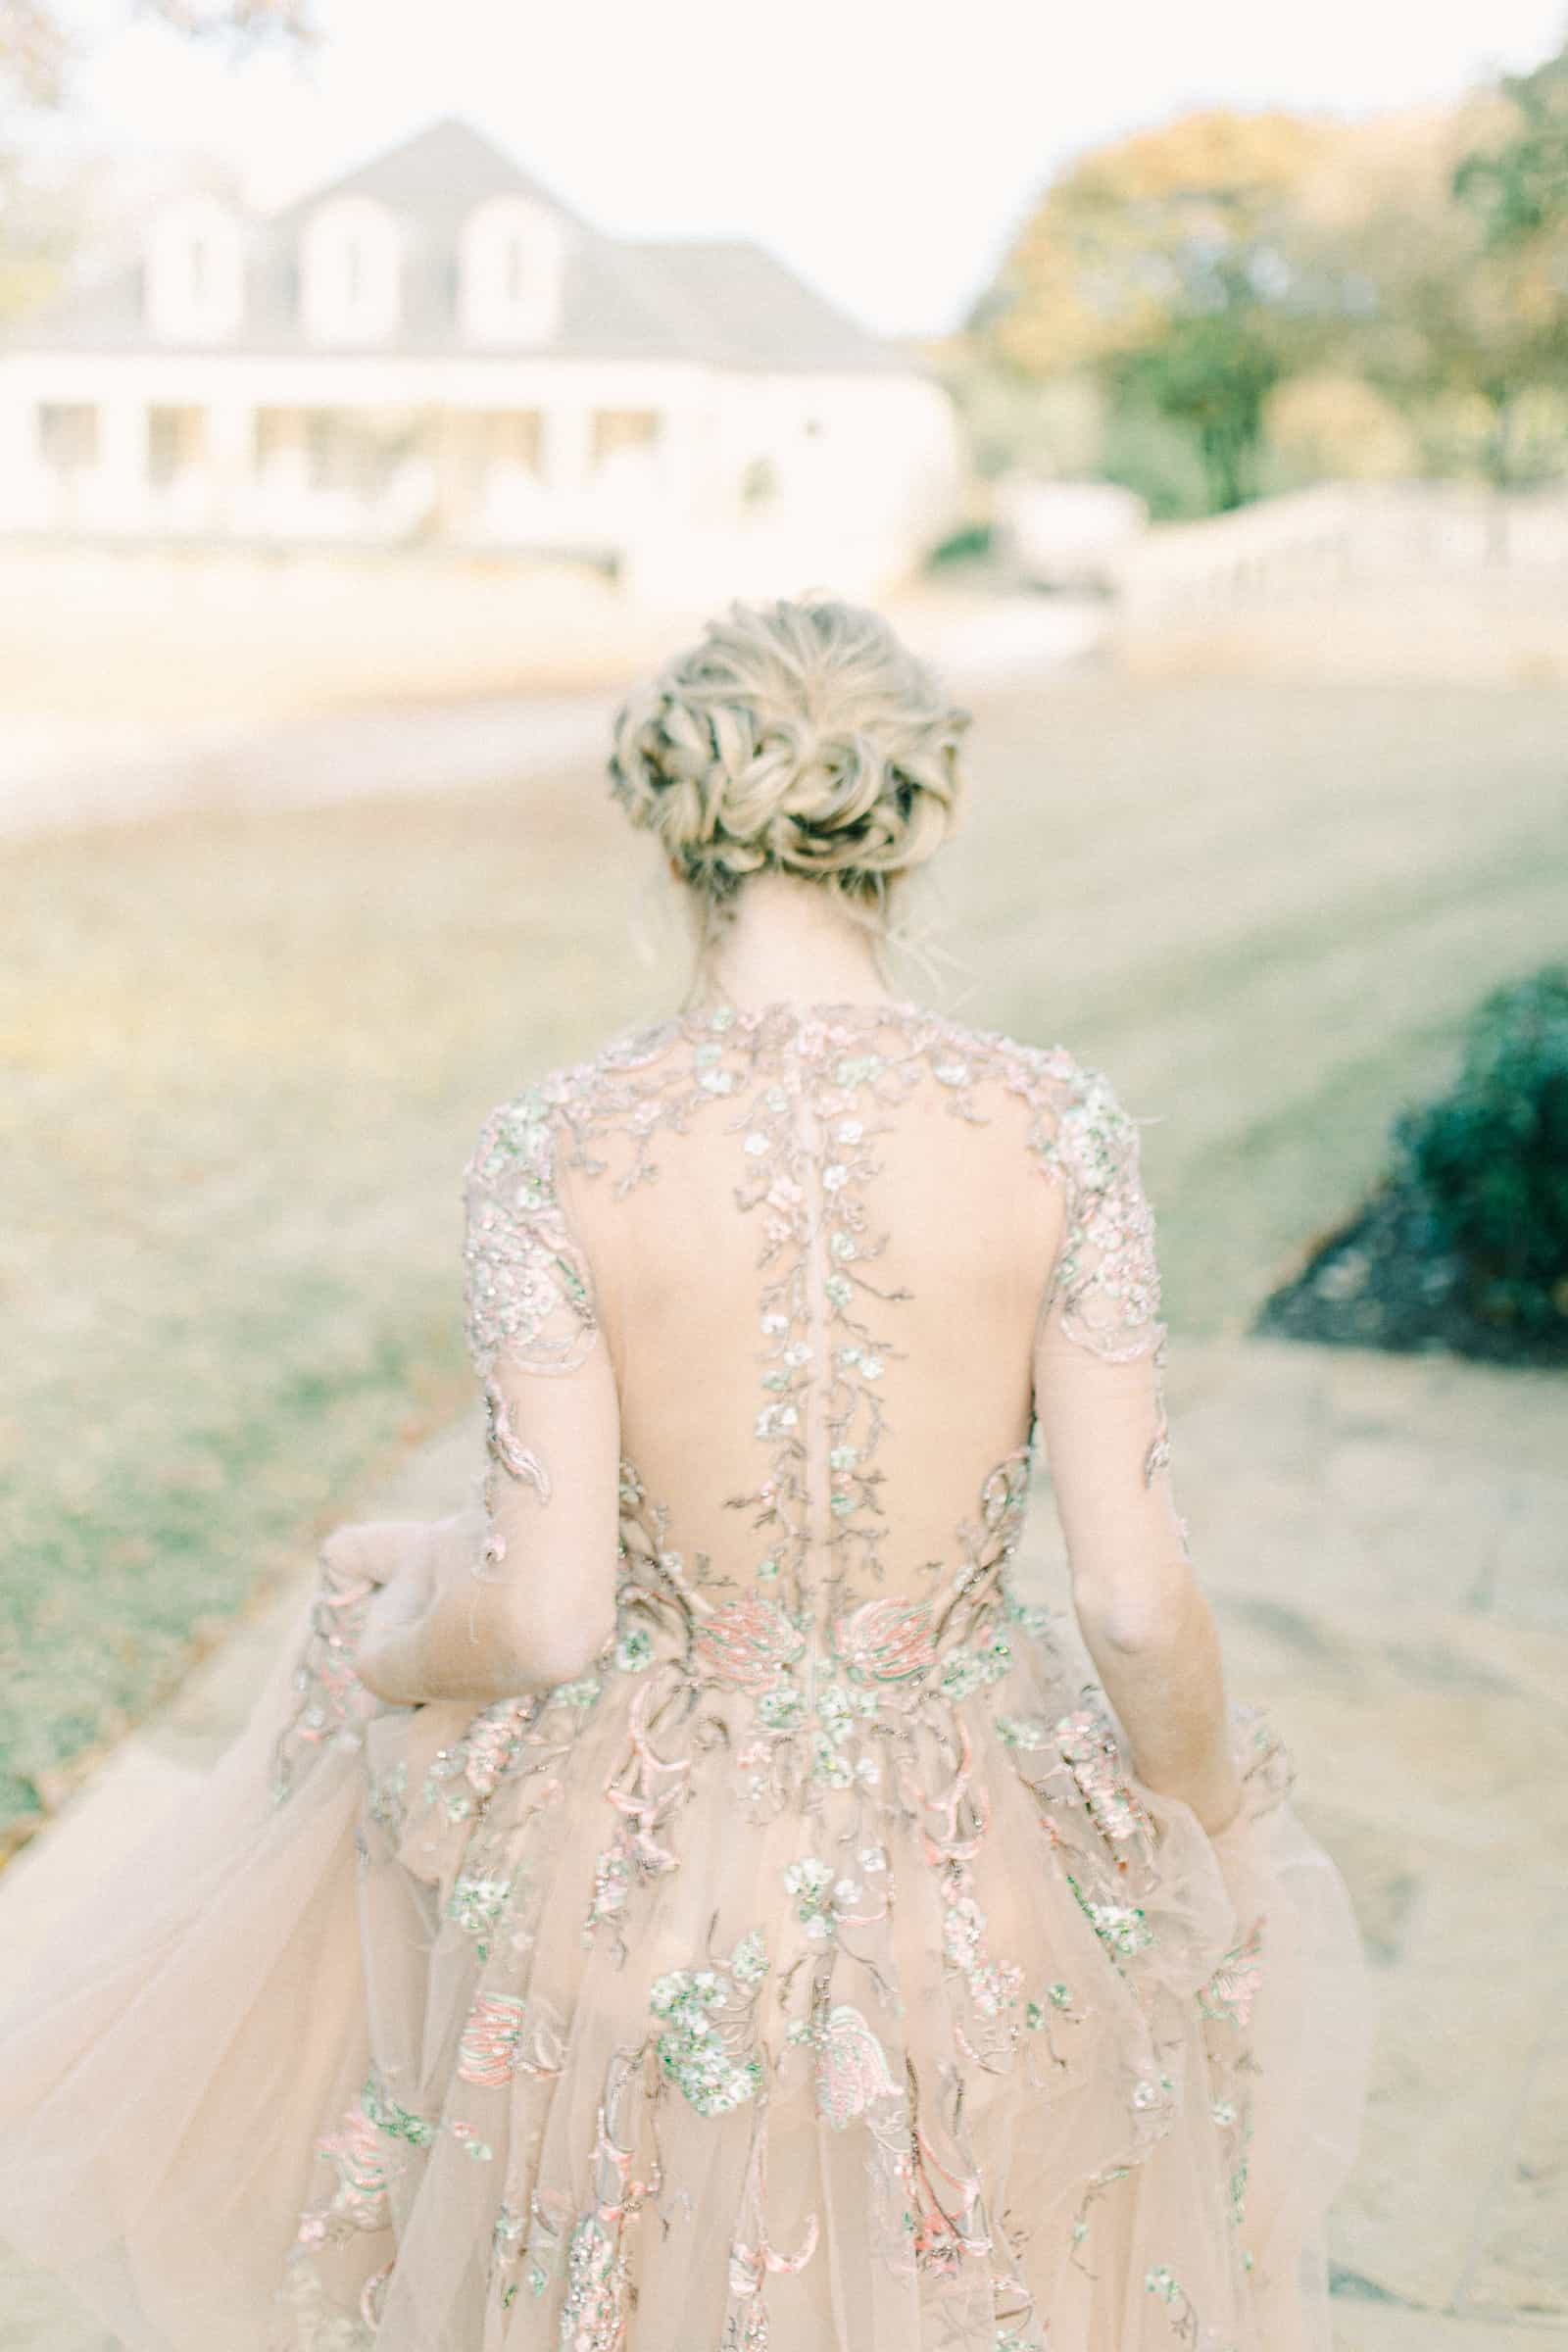 Back button details of couture wedding dress, blush pink gown with floral embroidery and embellishments, unique wedding dress